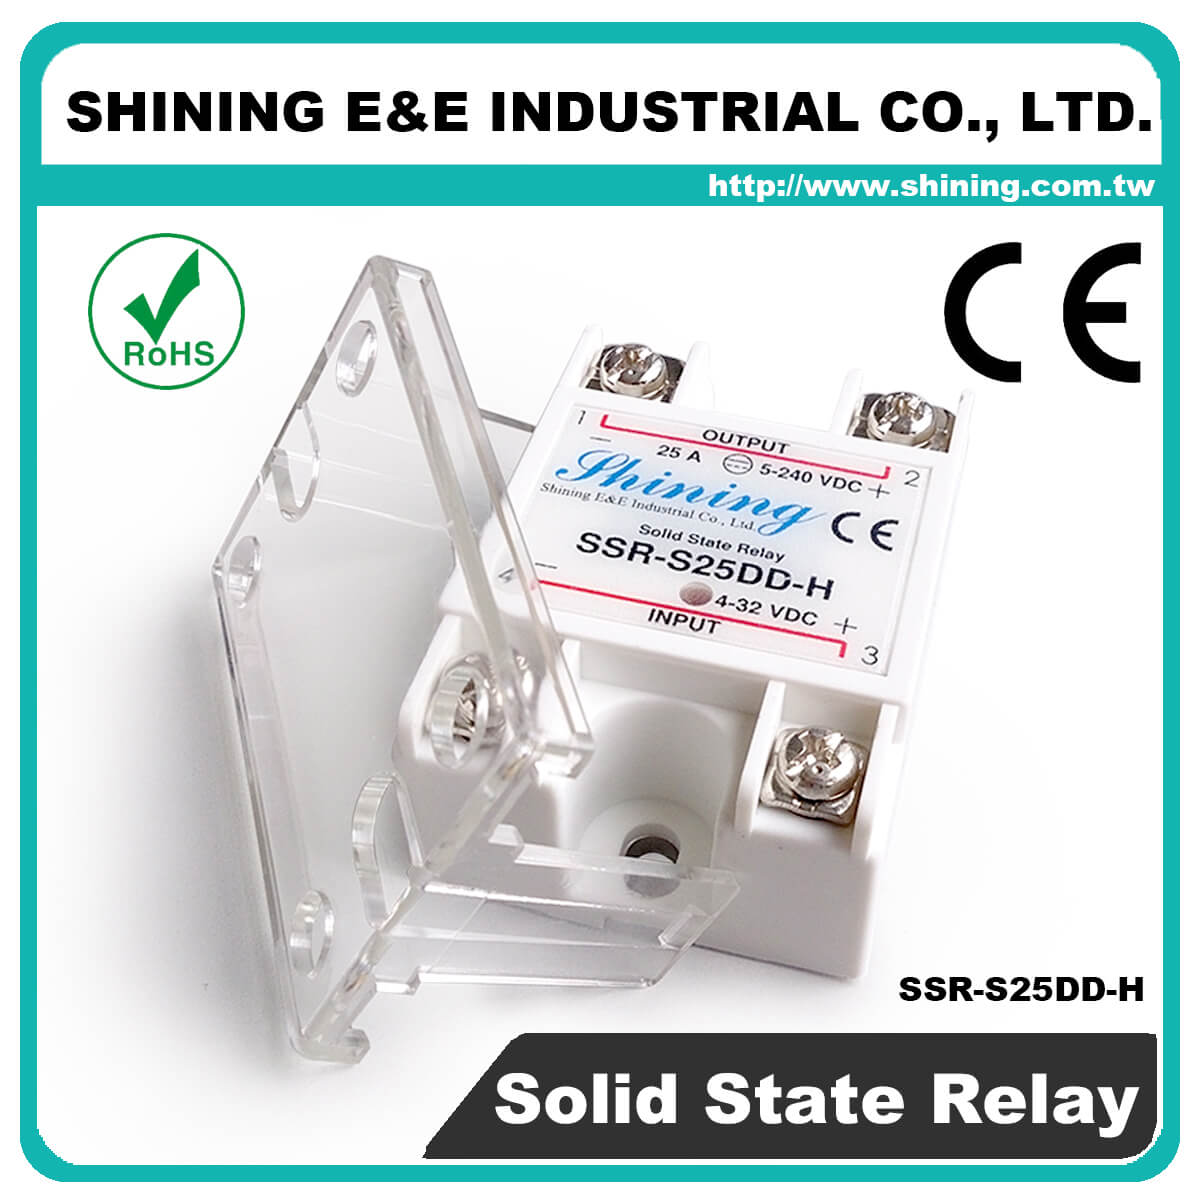 Ssr Sxxdd H Series Vrtoac Single Phase Solid State Relay The Professional S25dd Dc To 25a 120vdc